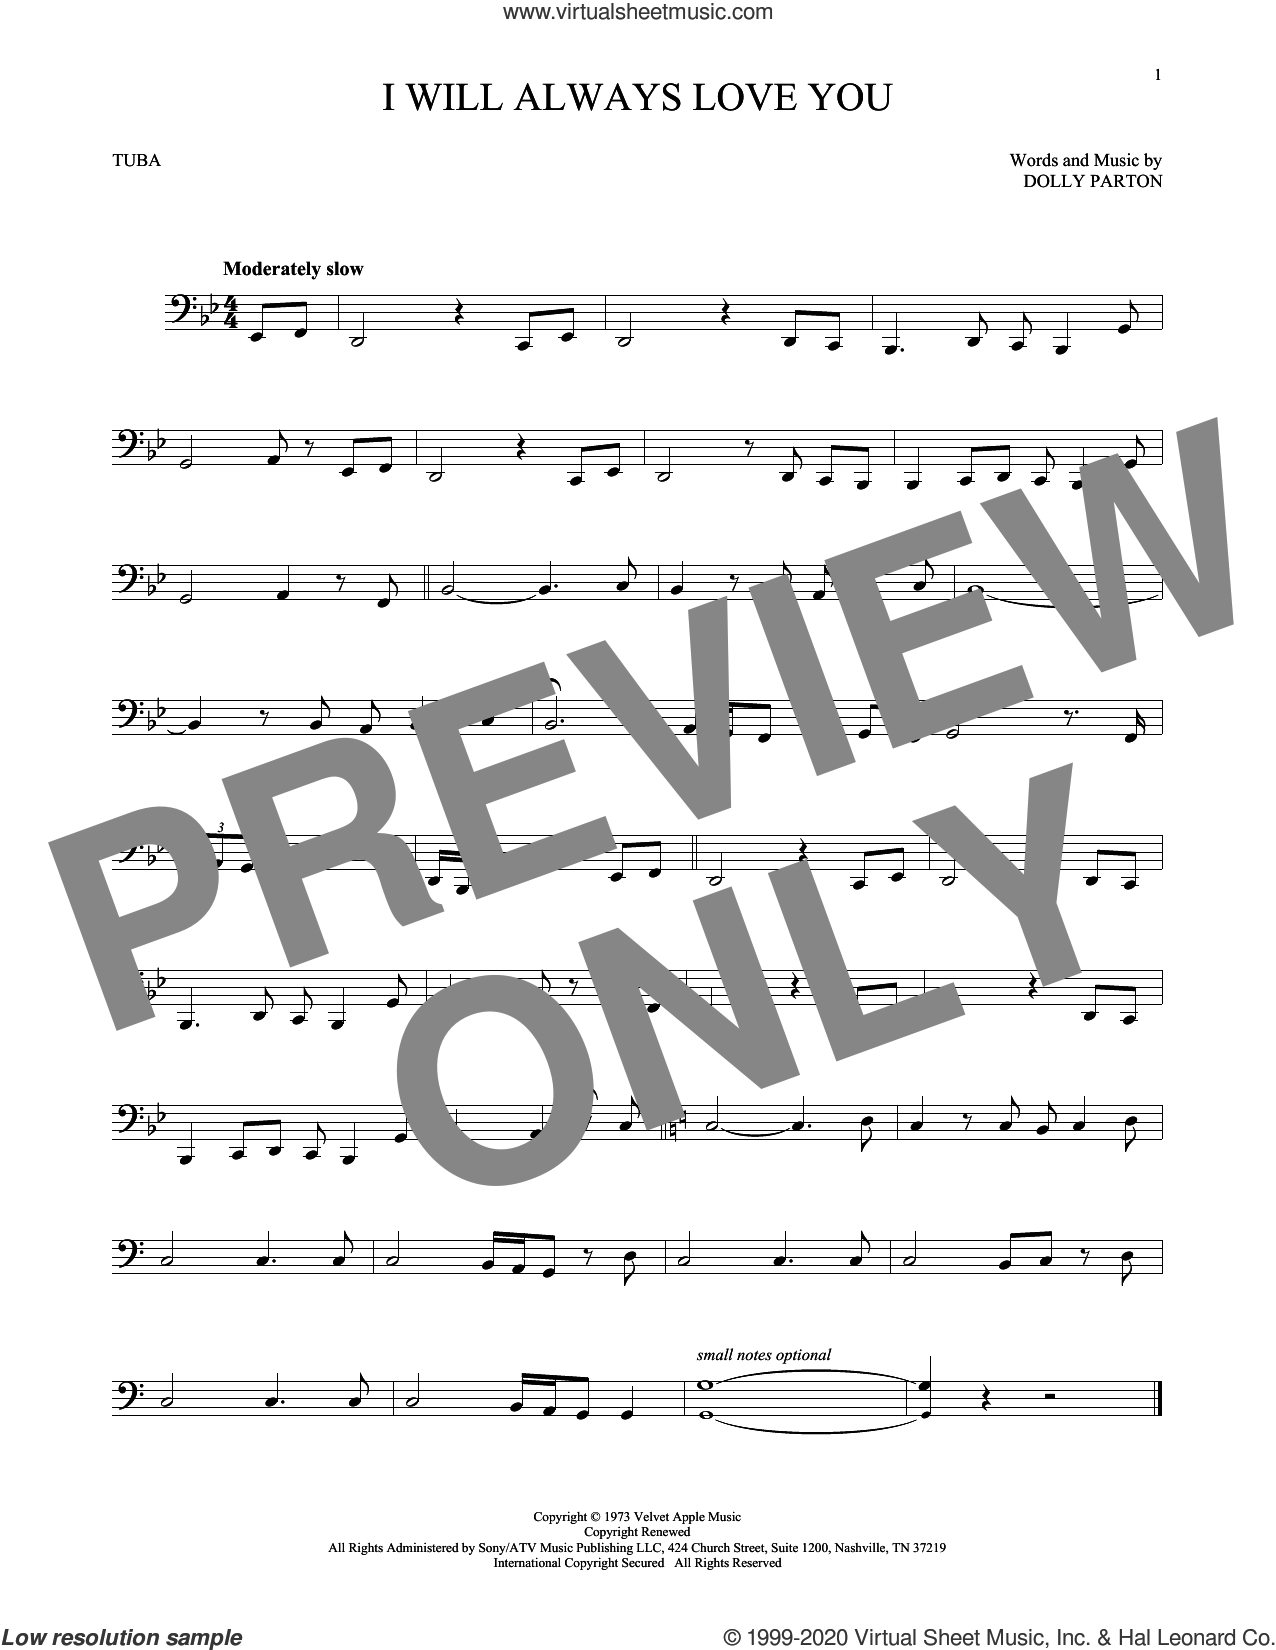 I Will Always Love You sheet music for Tuba Solo (tuba) by Whitney Houston and Dolly Parton, intermediate skill level